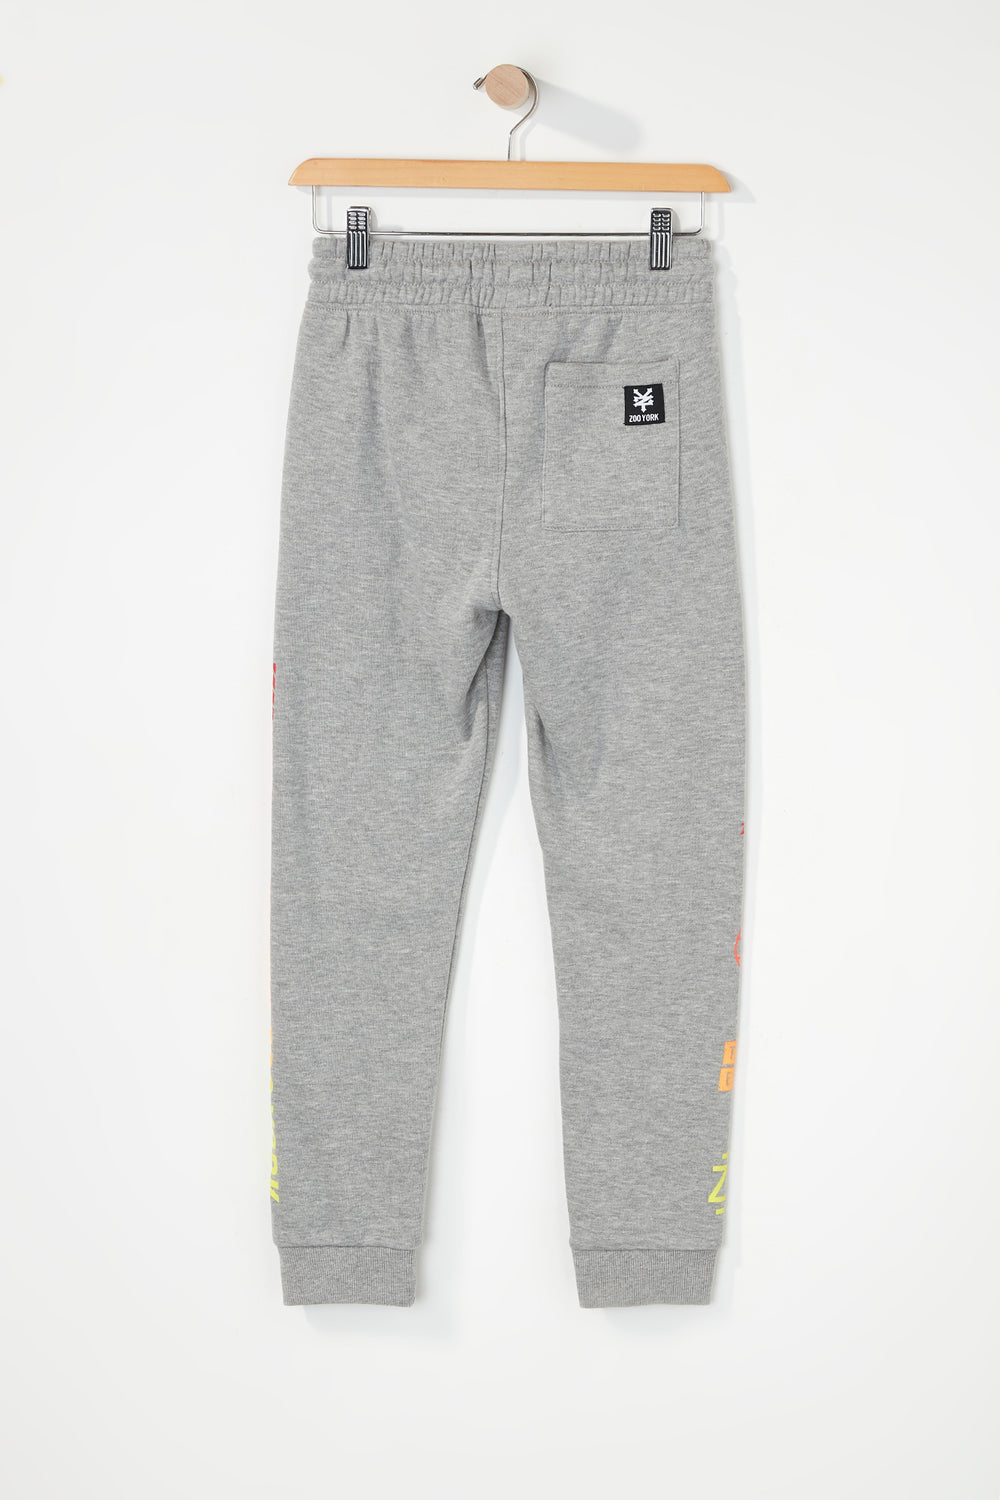 Zoo York Boys Gradient Logo Jogger Heather Grey